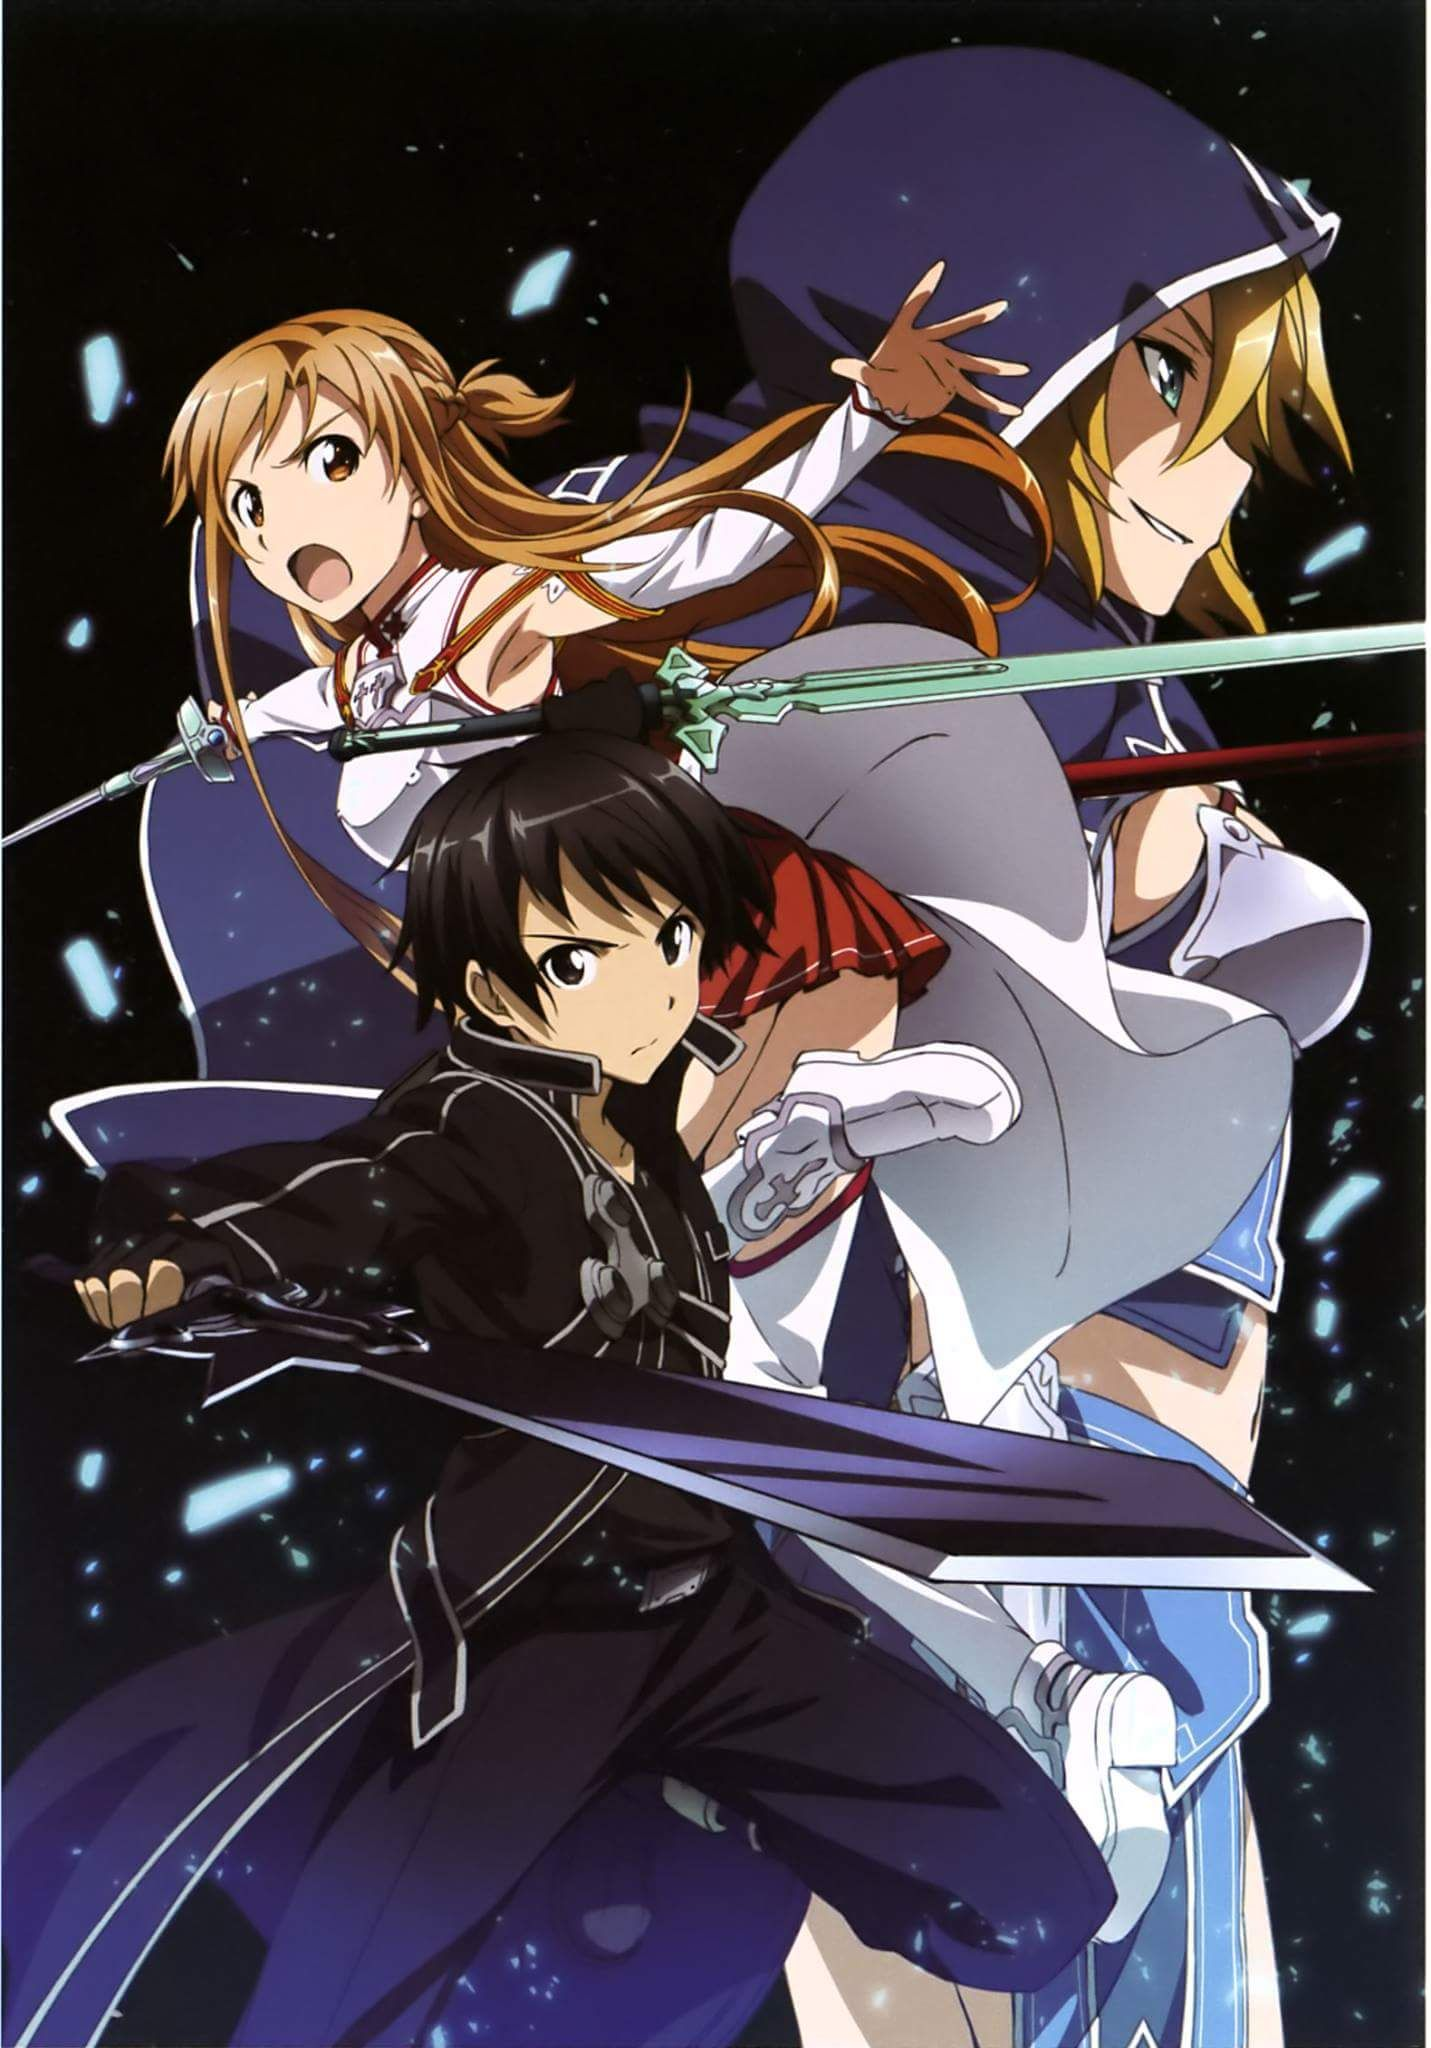 Pin by Mirian L. on Anime & Cartoons (With images) Sword